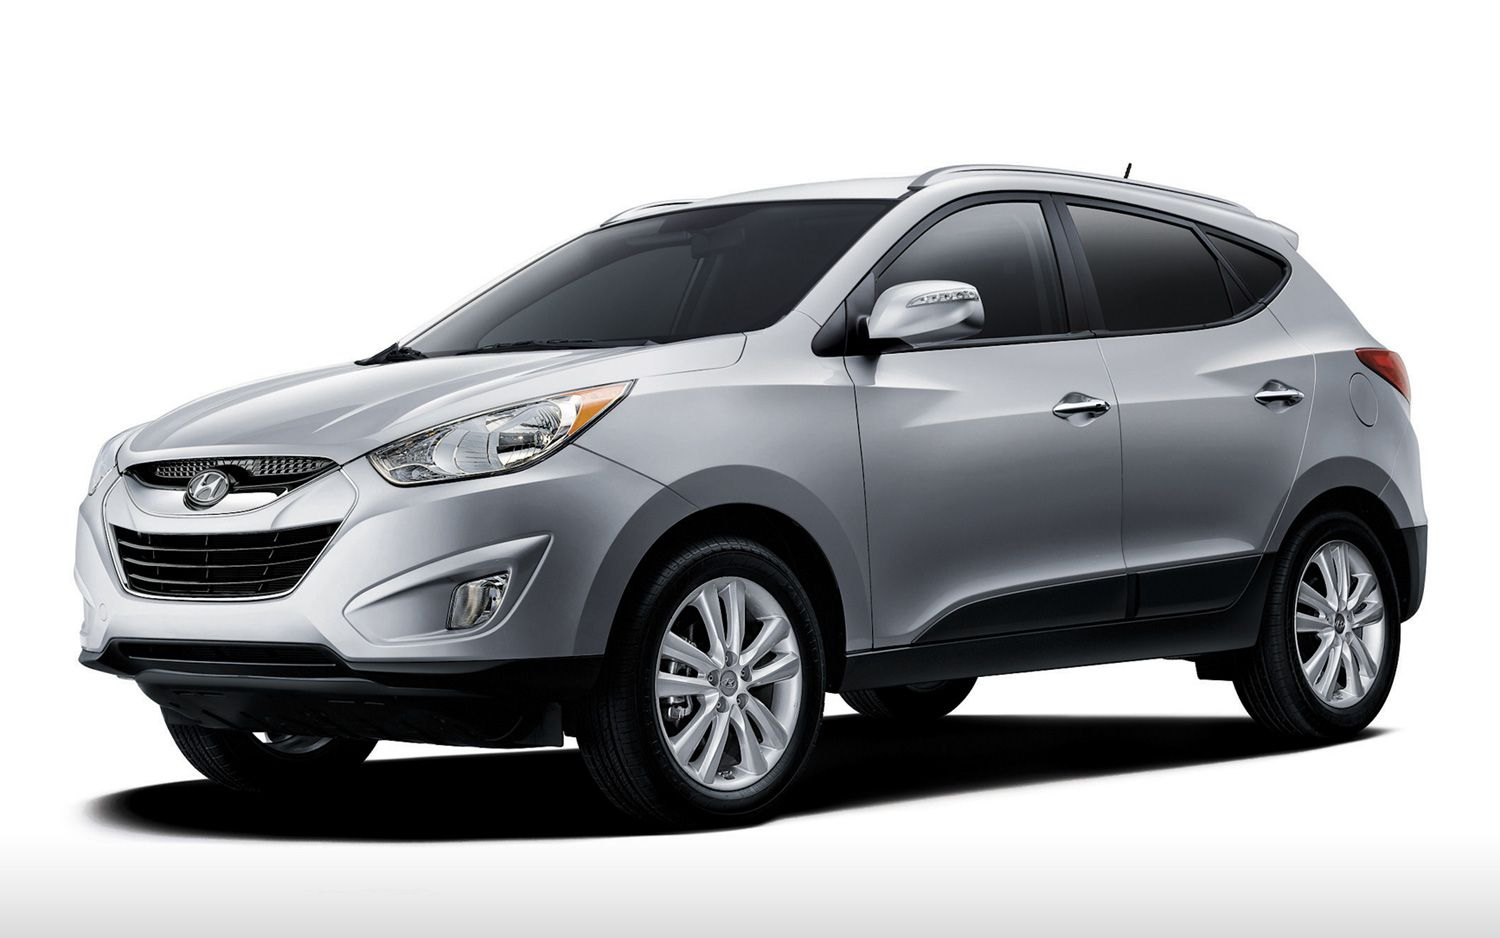 2015 hyundai ix35 review and price are you looking for a large family sedan